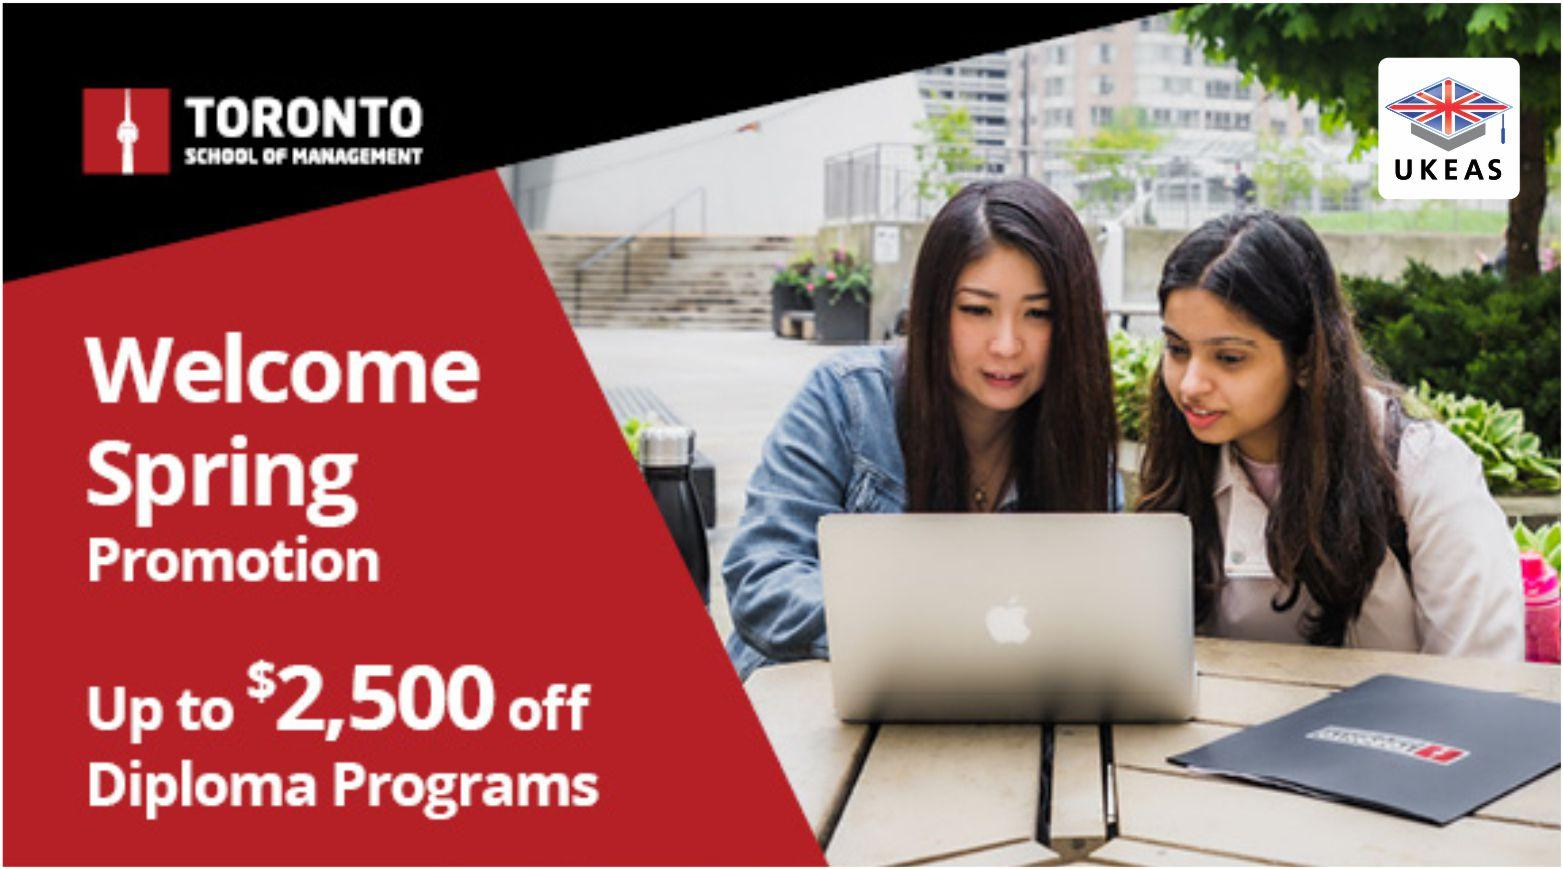 TSoM Spring Promotion- Diploma tuition discounts up to $2,500